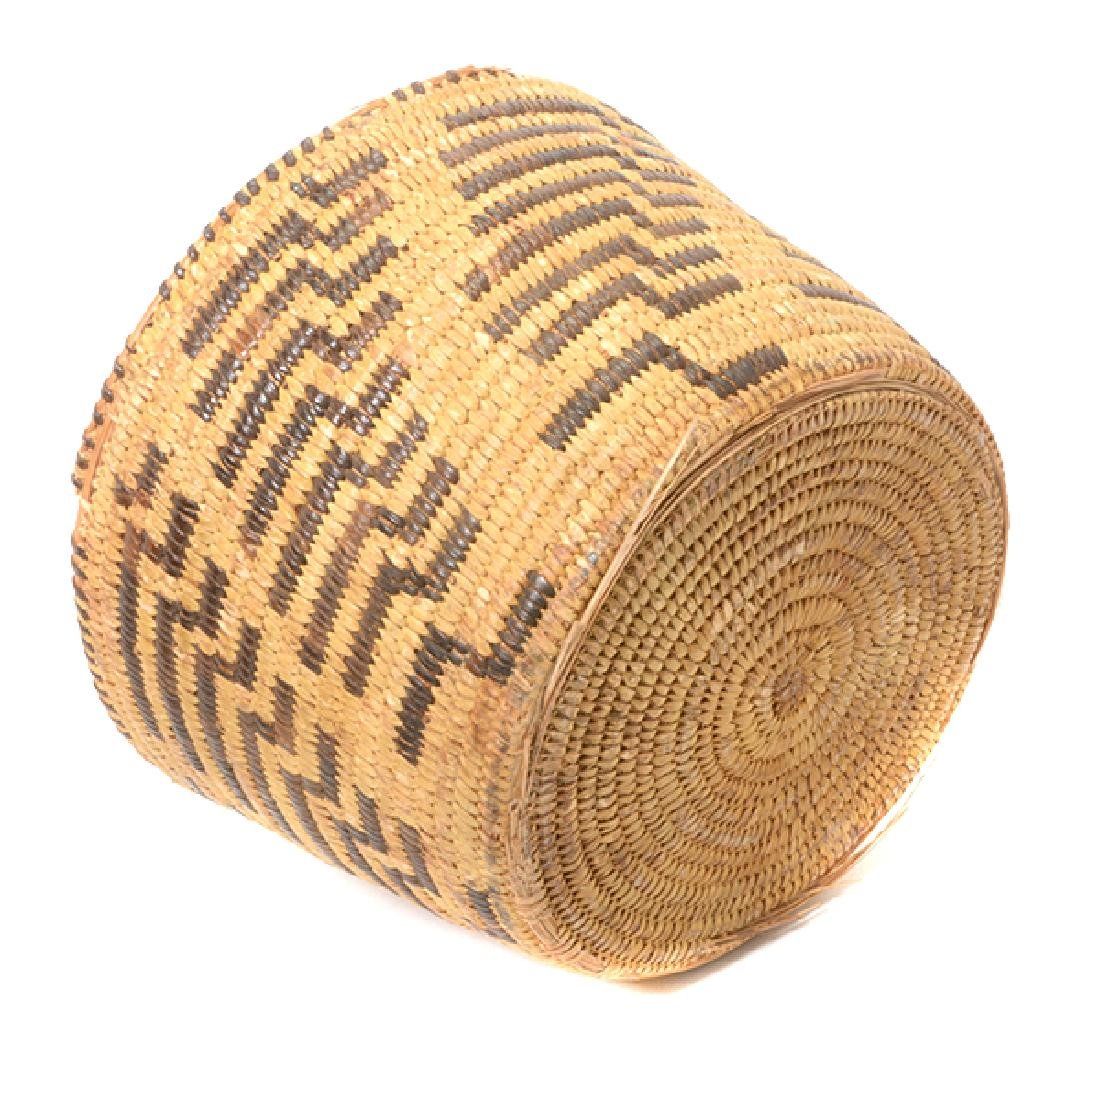 Three Native American Hand Woven Baskets - 6